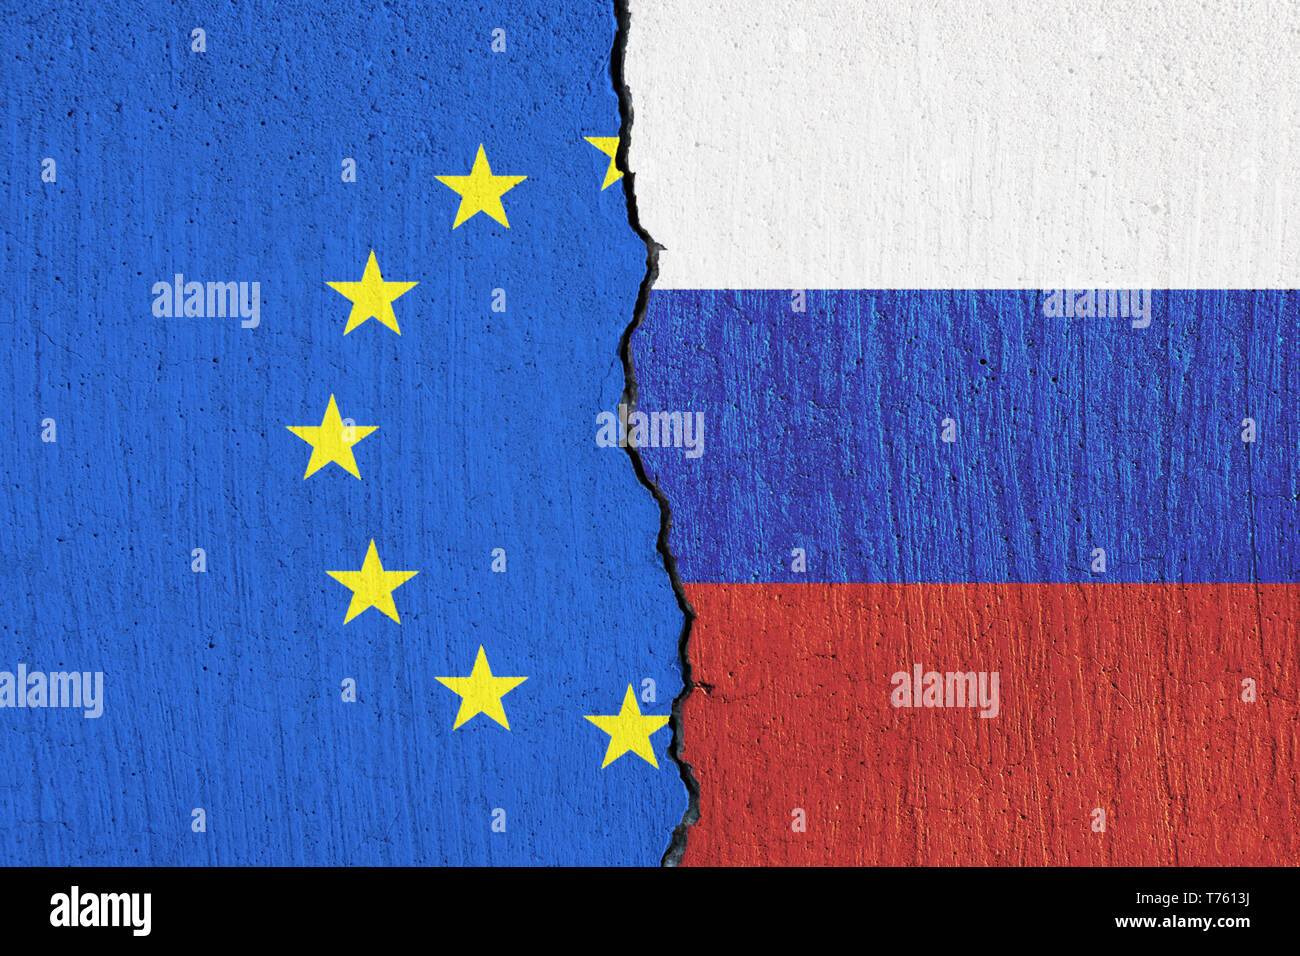 flag of the European Union and the flag of Russia painted on wall Stock Photo